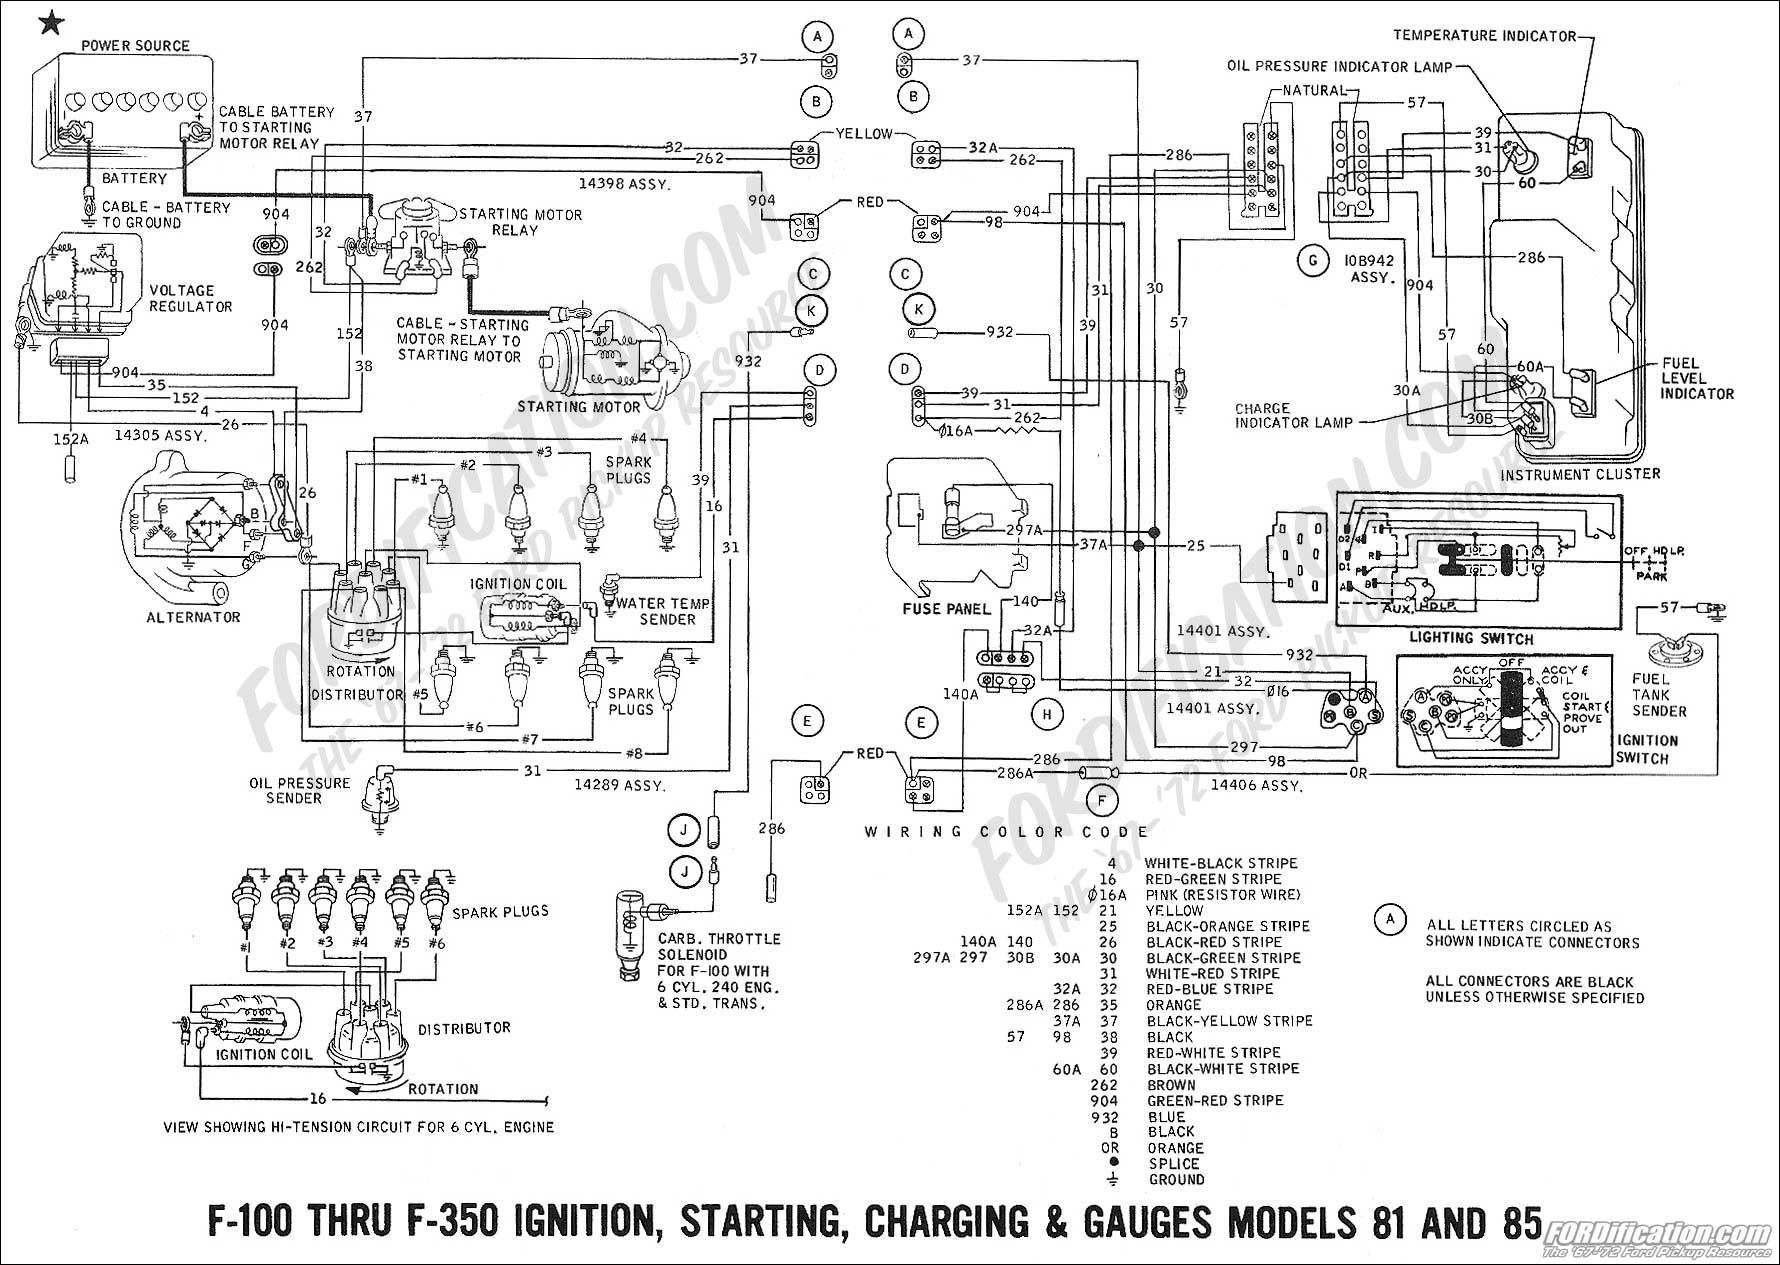 hight resolution of 1976 ford truck alternator diagram wiring diagram technicalternator wiring diagrams 1991 f600 ford truck wiring diagram